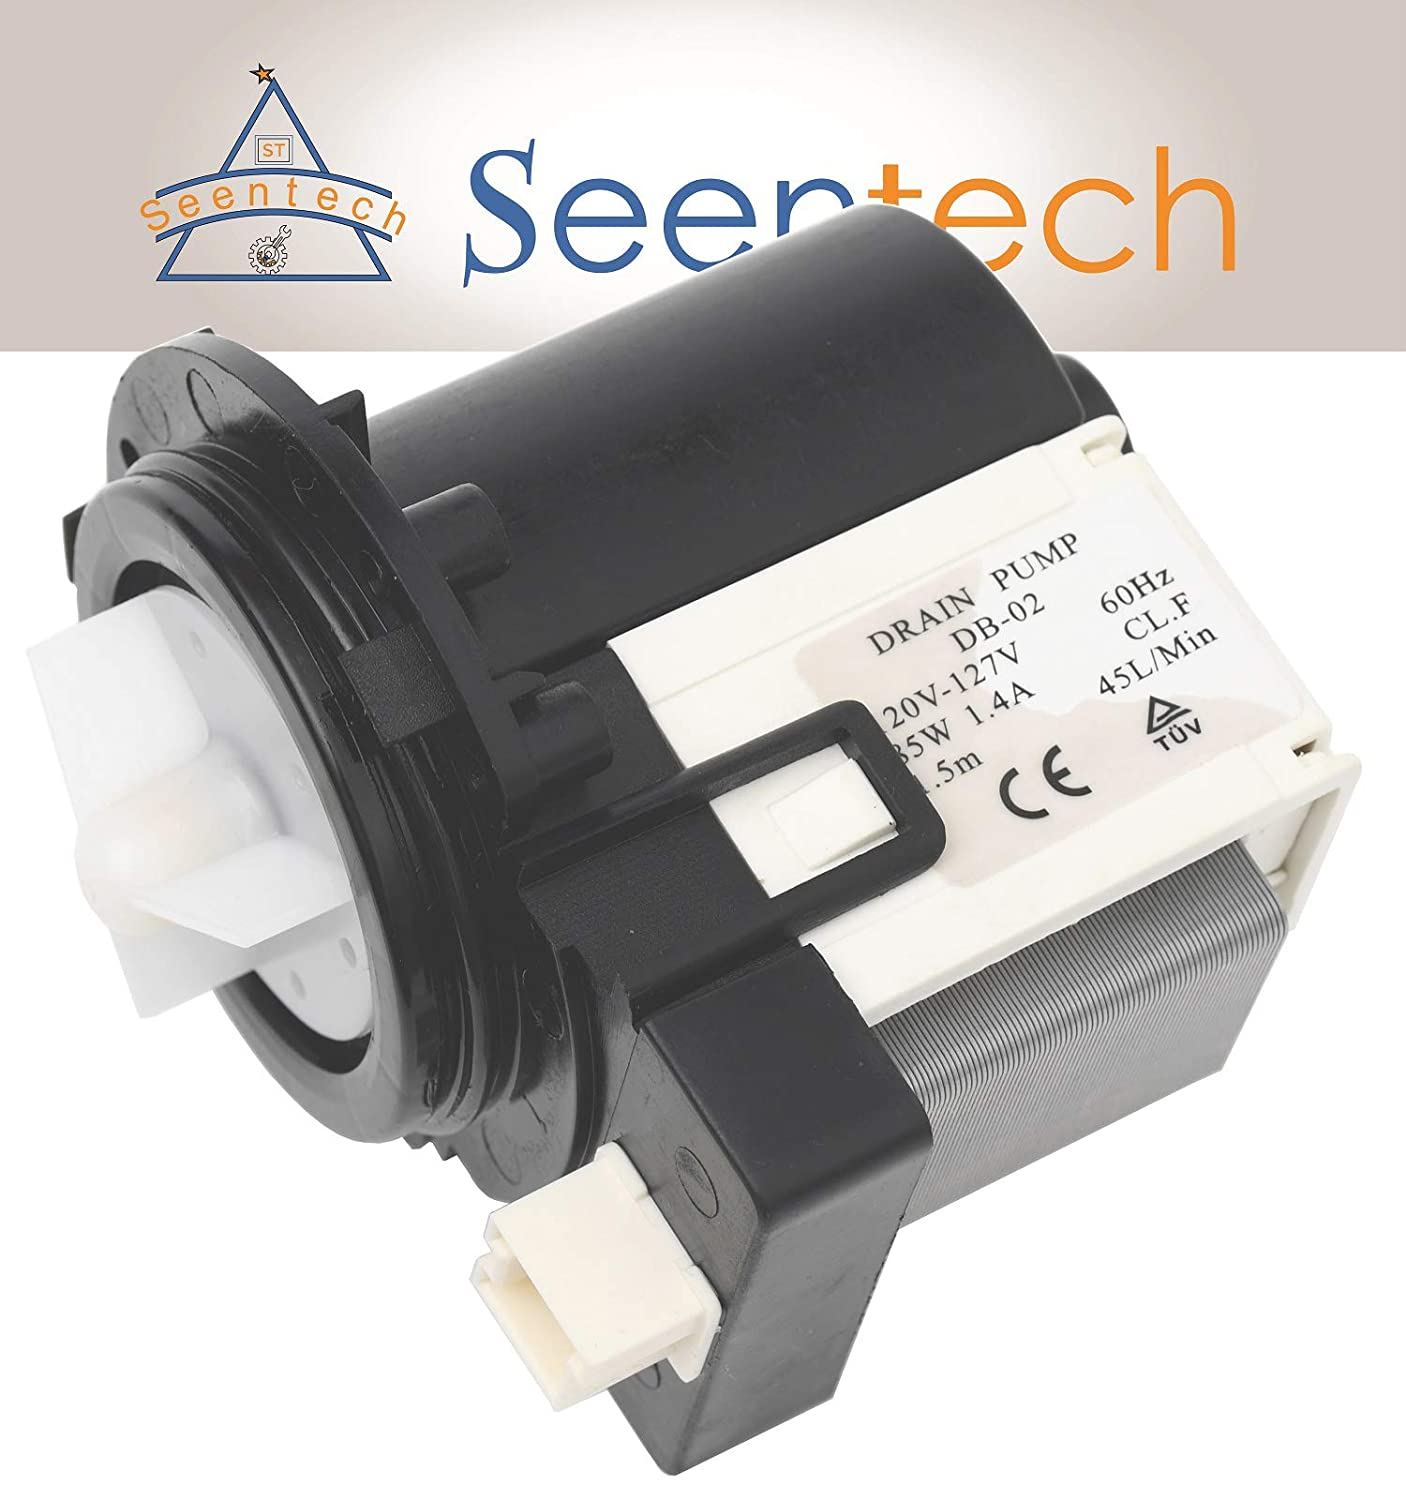 DC31-00054A Washer Drain Pump for Samsung Maytag Kenmore Washing Machines by Seentech - Replaces Part Numbers AP4202690, 1534541, DC31-00016A, PS4204638